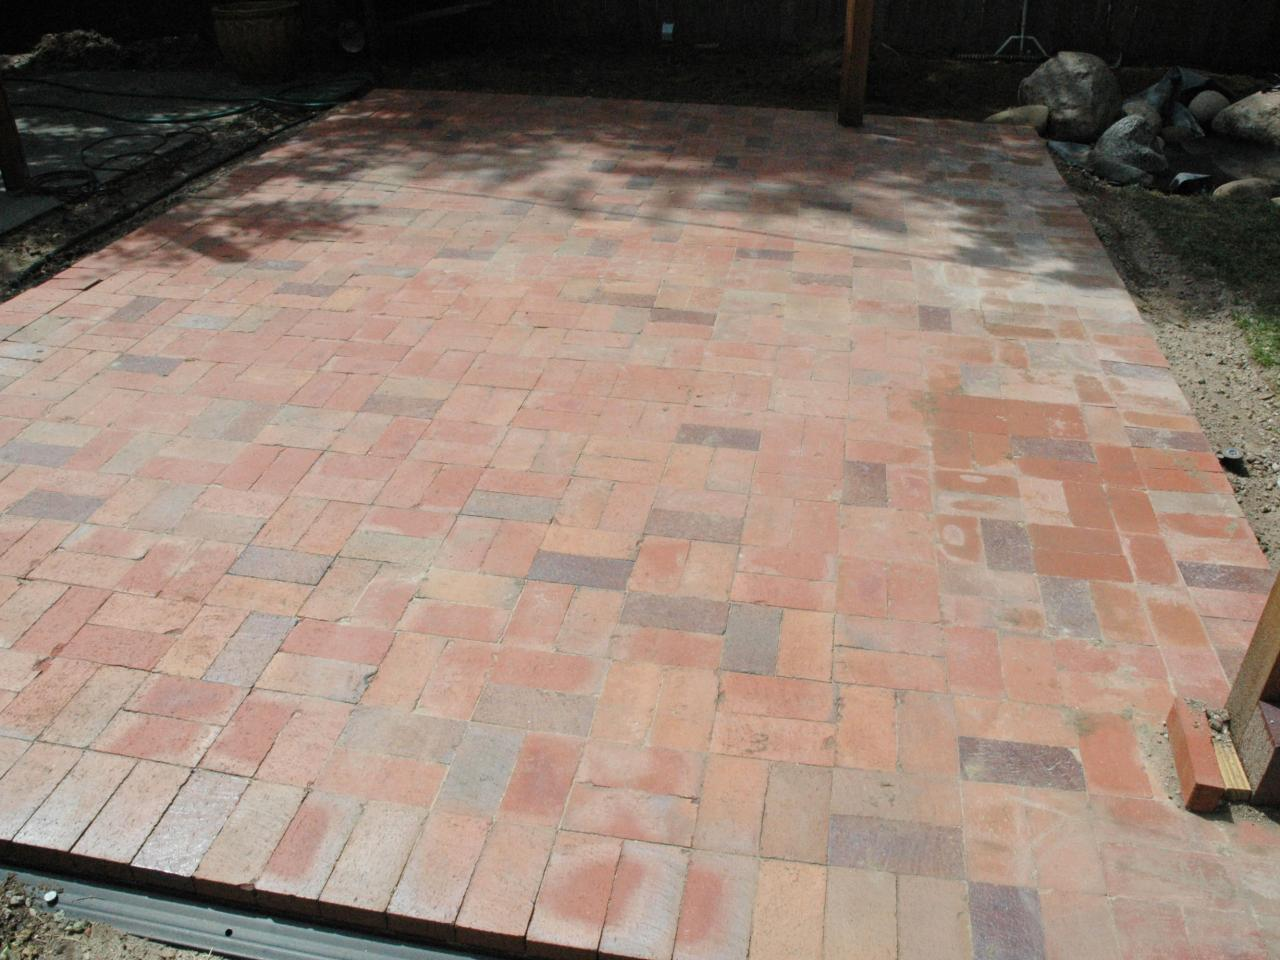 how to lay a brick paver patio | how-tos | diy - Brick Stone Patio Designs